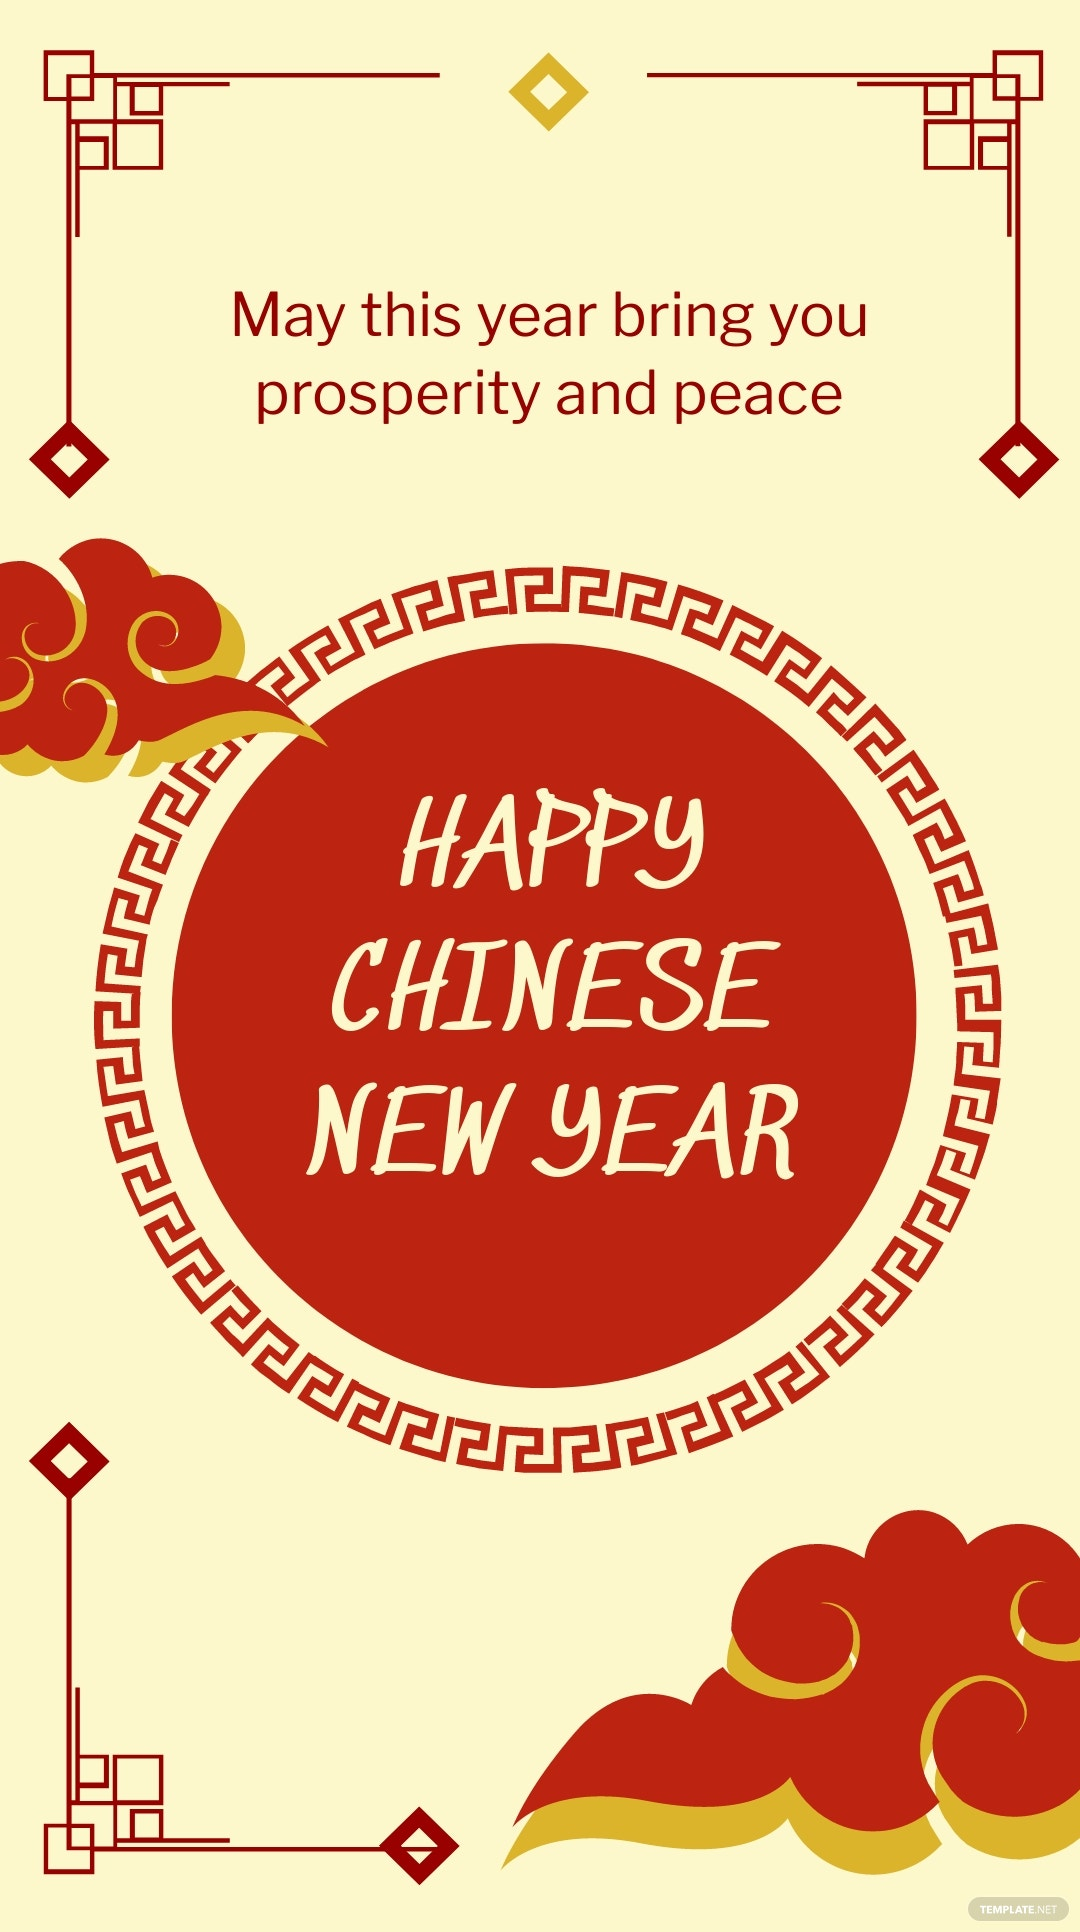 Vintage Chinese New Year Instagram Story Template 3.jpe